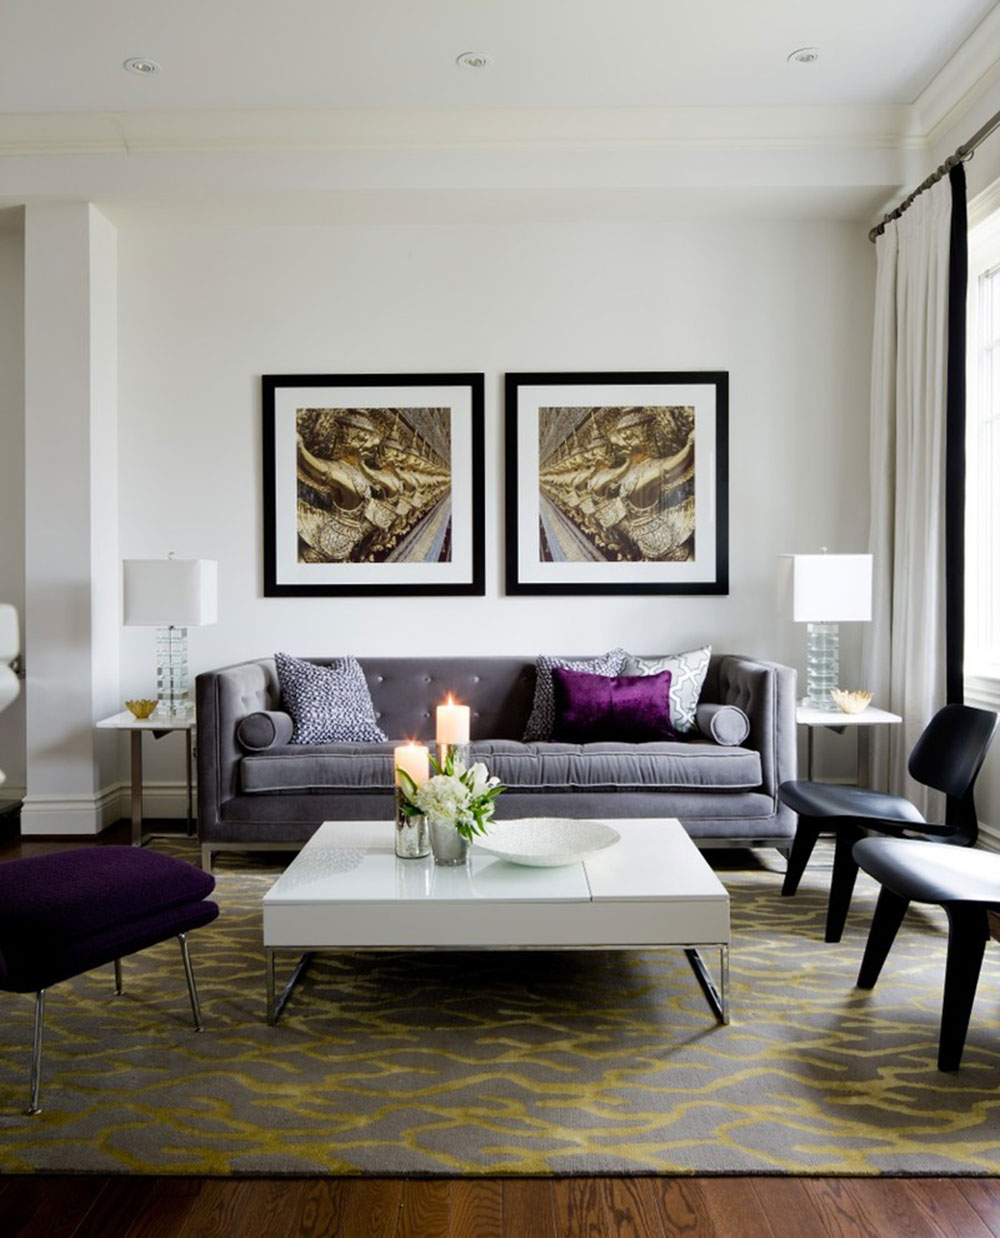 How to choose a sofa that suits you2 How to choose a sofa that suits you